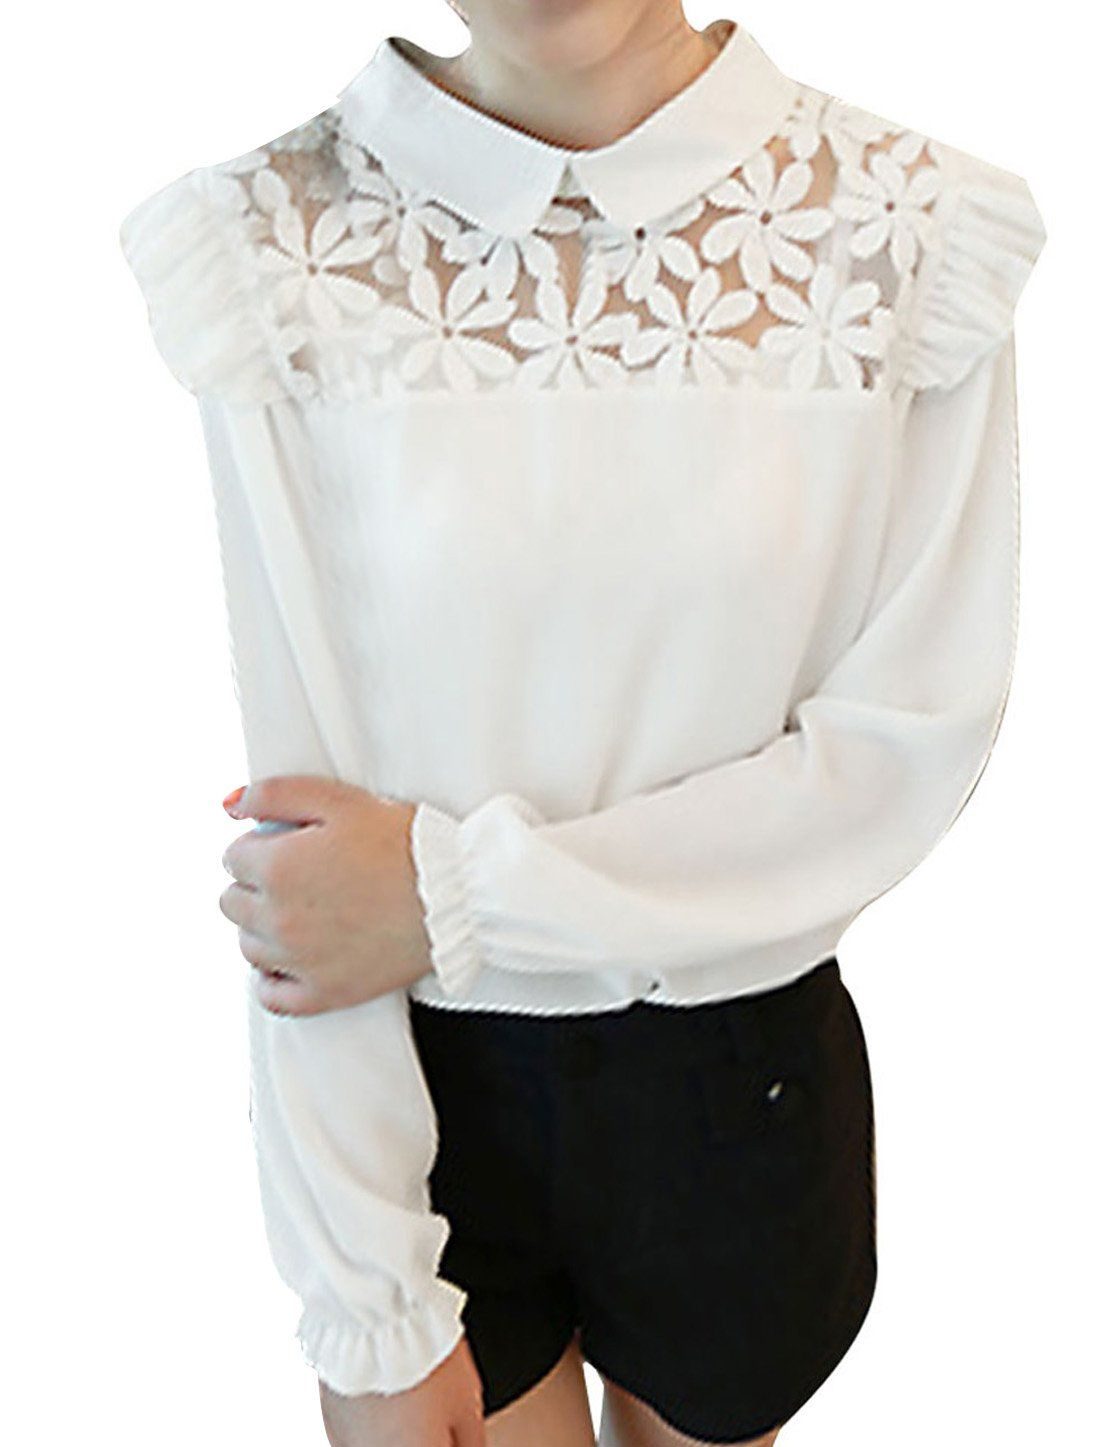 Lady peter pan collar long sleeve crochet pattern blouse white xs lady peter pan collar long sleeve crochet pattern blouse white xs bankloansurffo Image collections